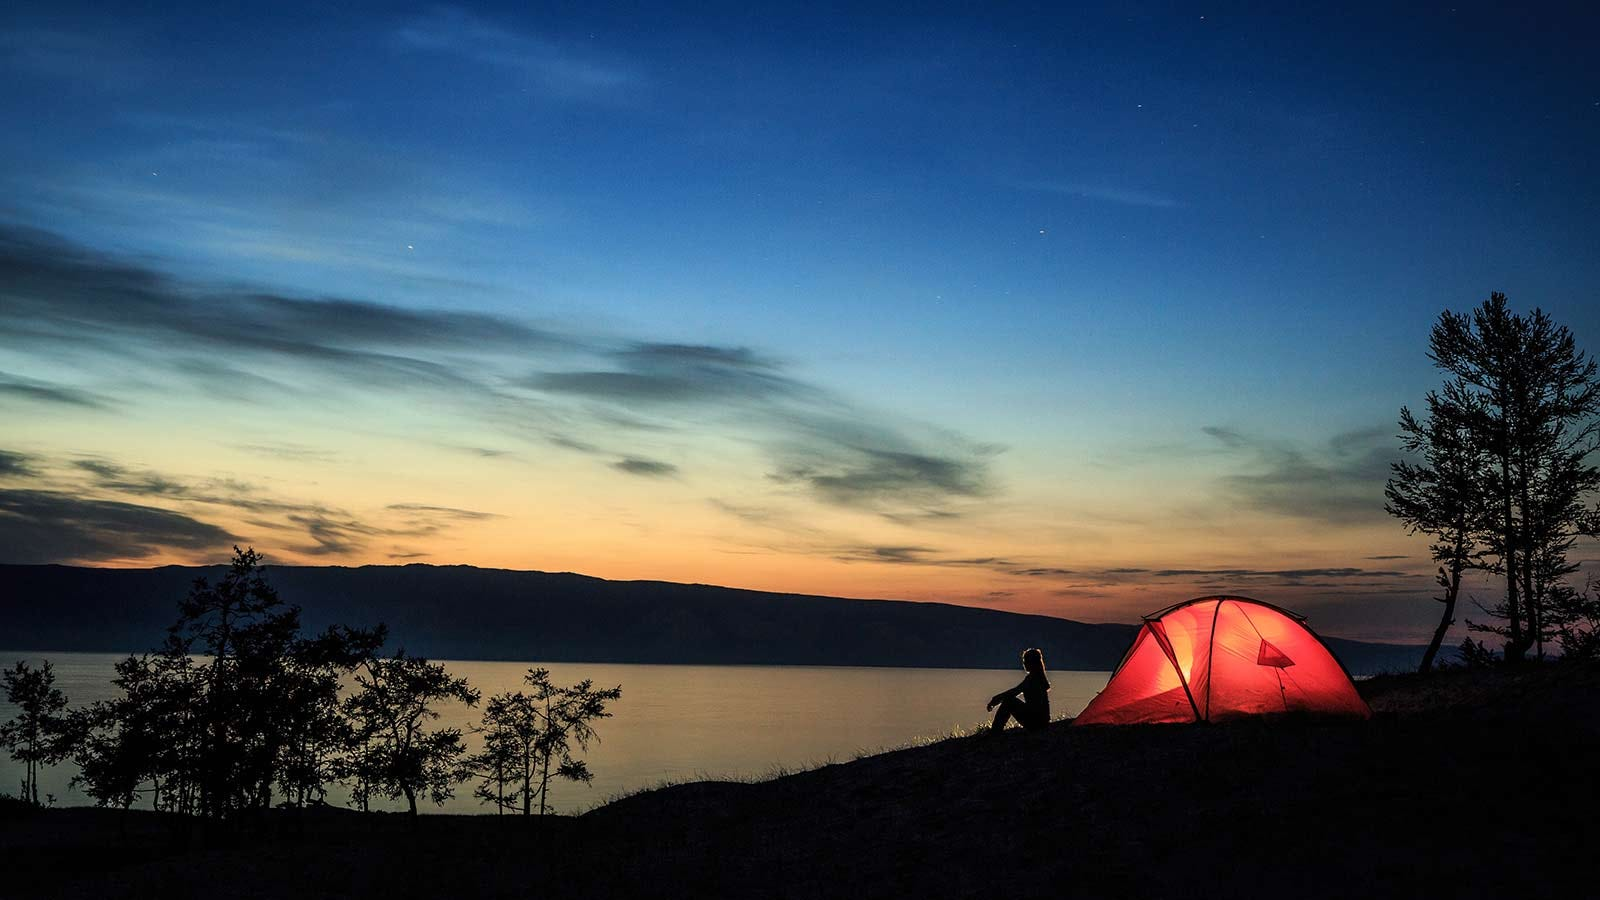 Silhouette of a woman sitting outside an illuminated tent by a remote lake.